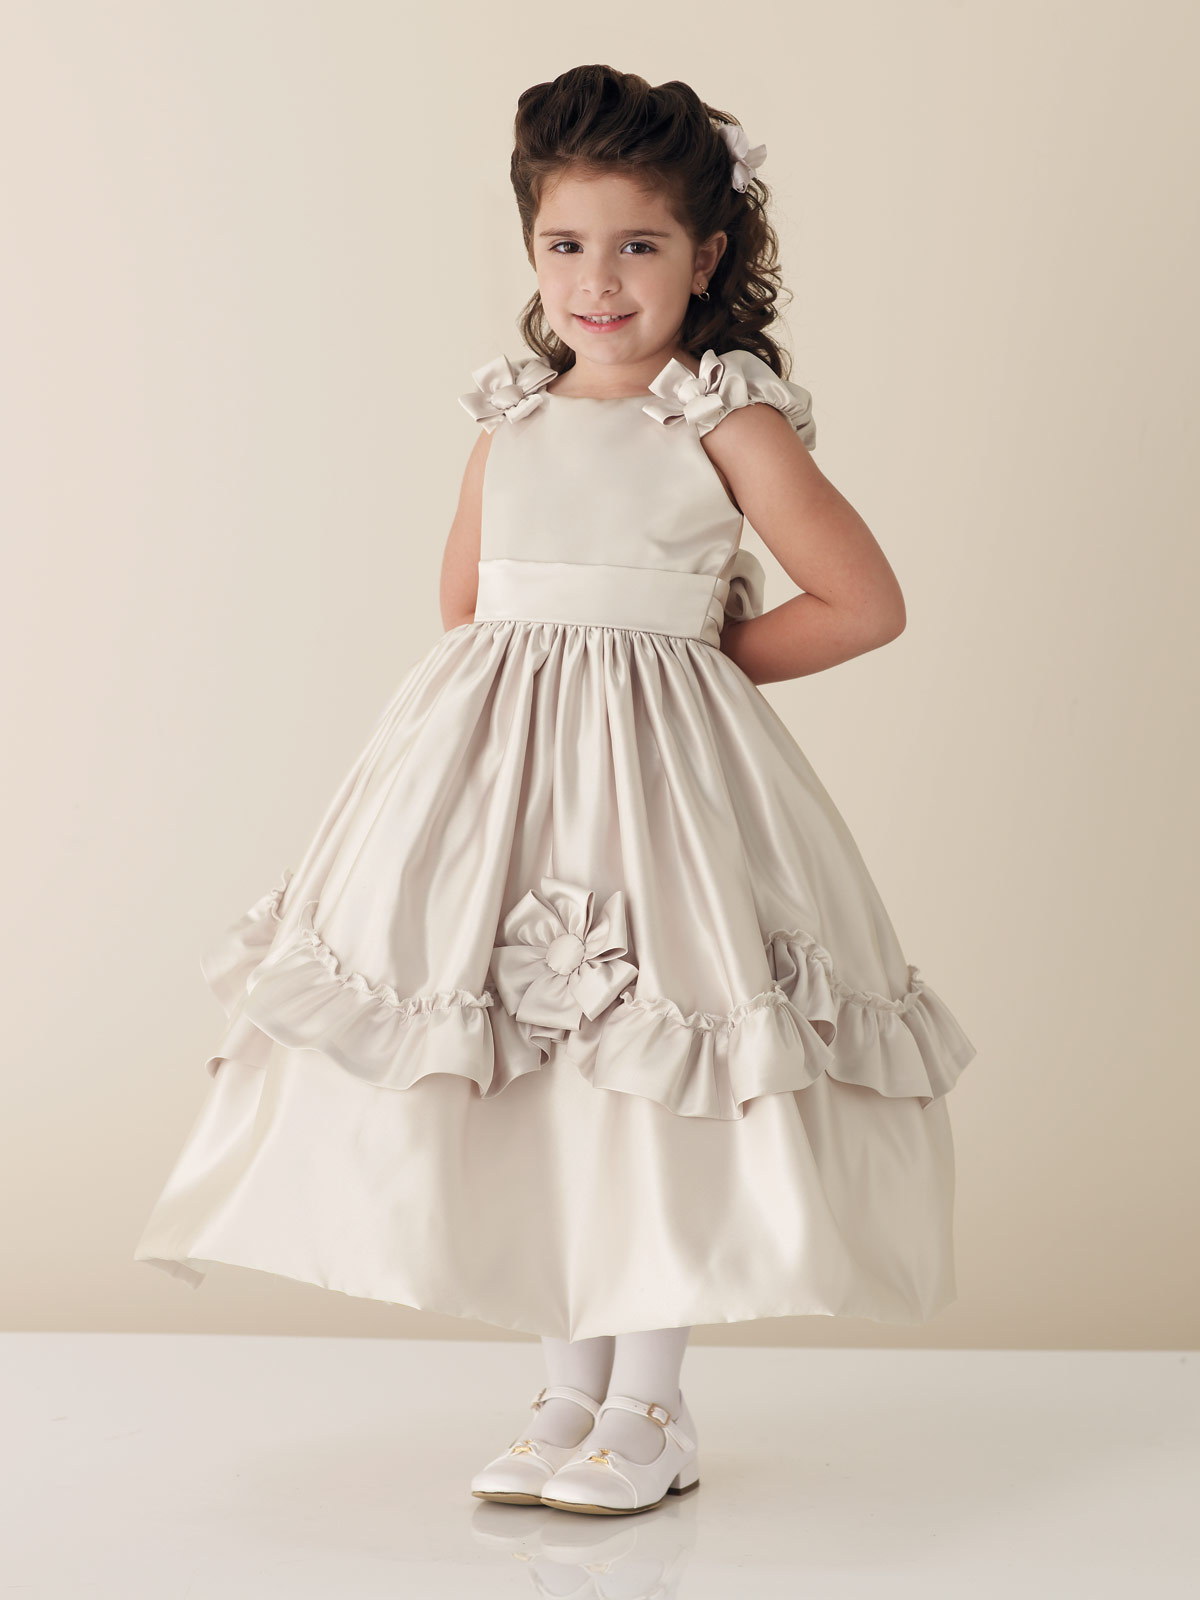 Ideas Evening Wedding Dresses For Junior (Child) | Photos ...